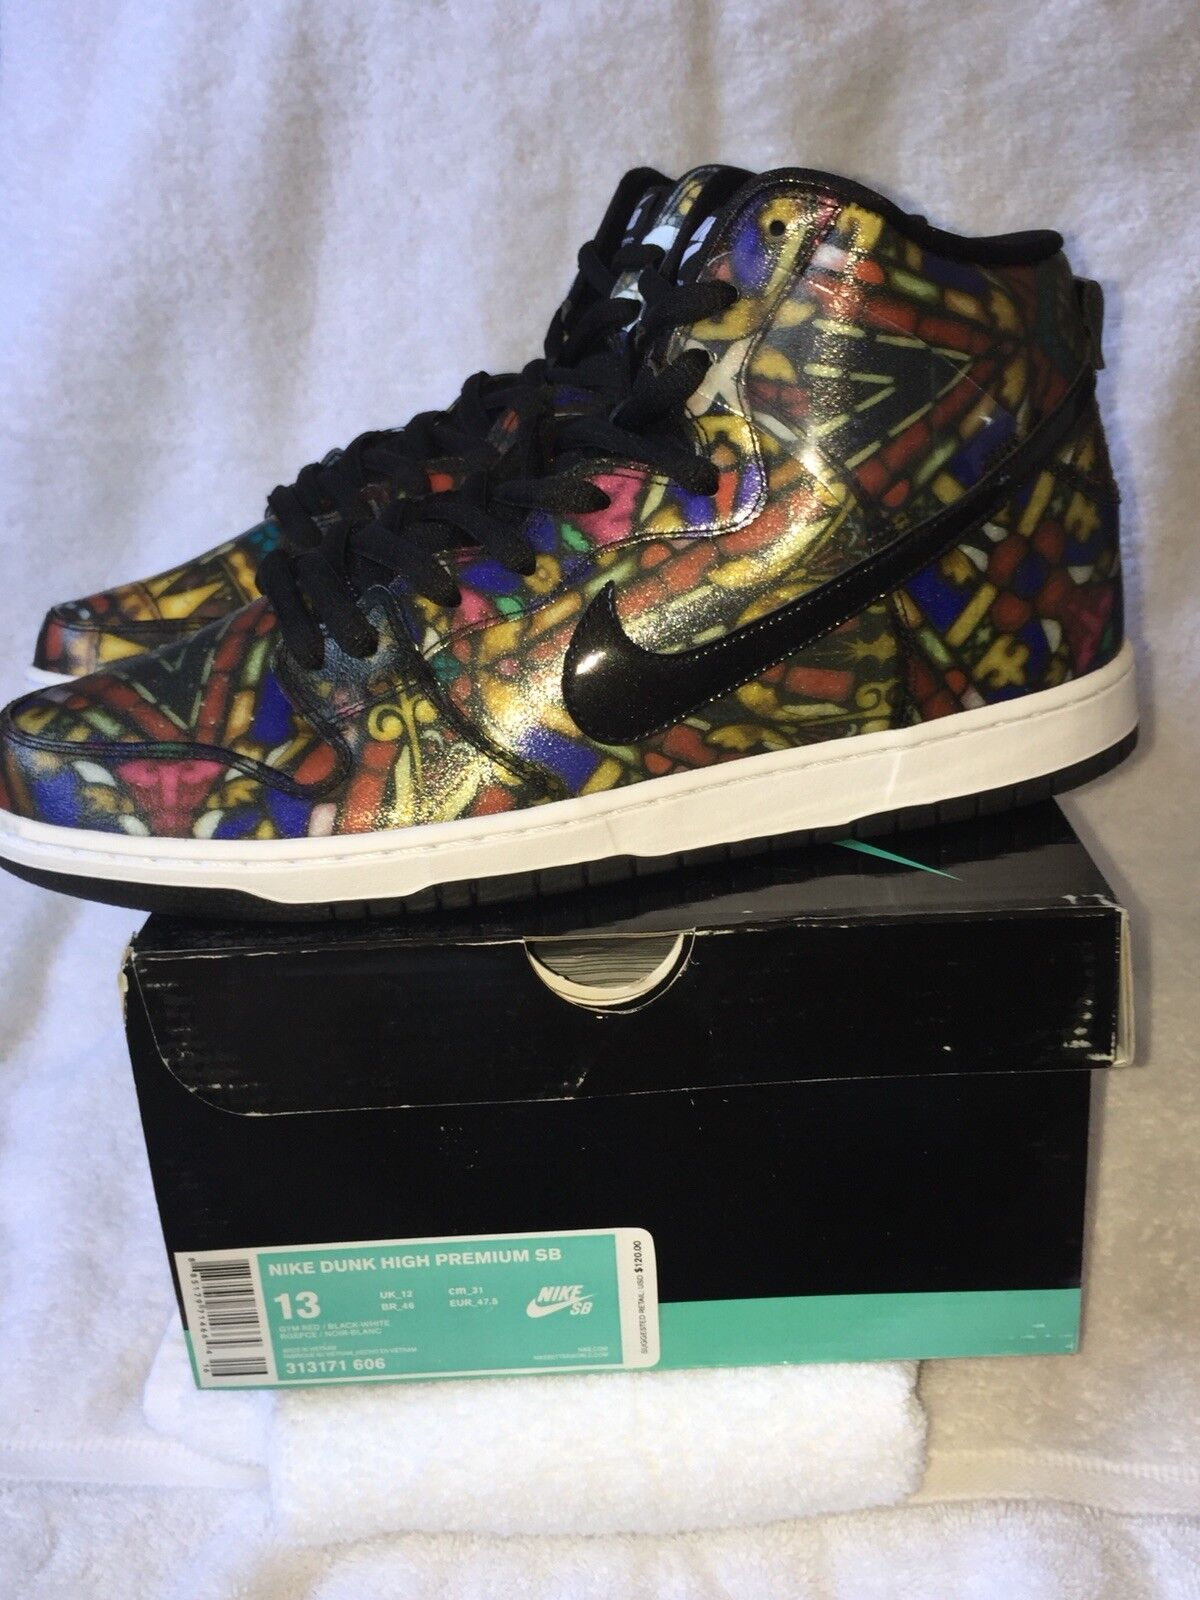 Nike Sb High Stain Glass - Concepts - Size 13 New Nib